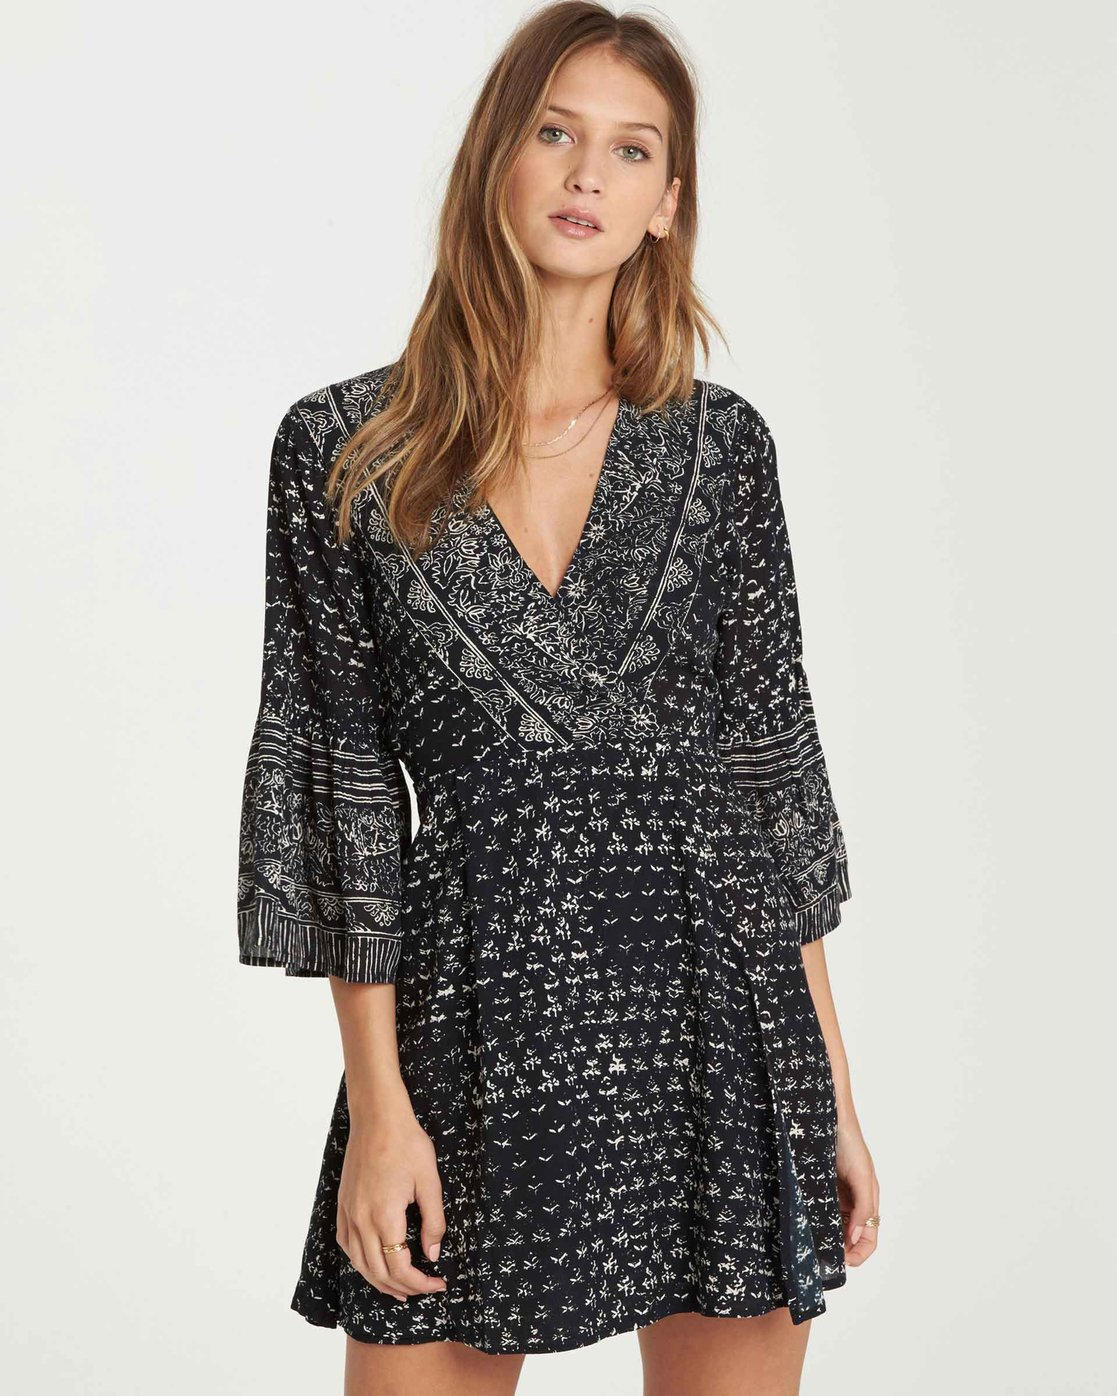 2e260f9bb3d billabong black dress – Little Black Dress | Black Lace Bridesmaid ...